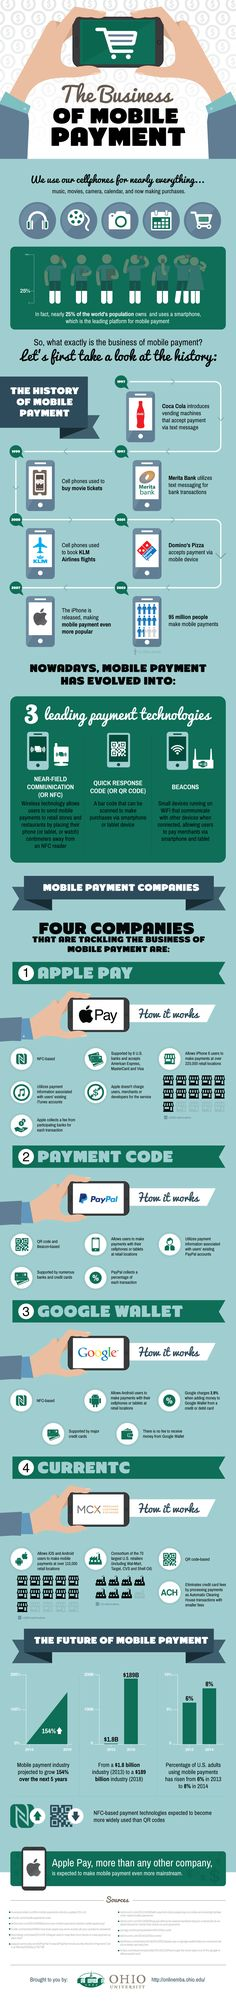 Missi Rose's Views: Mobile payments are changing the way we interact with our money! #finance